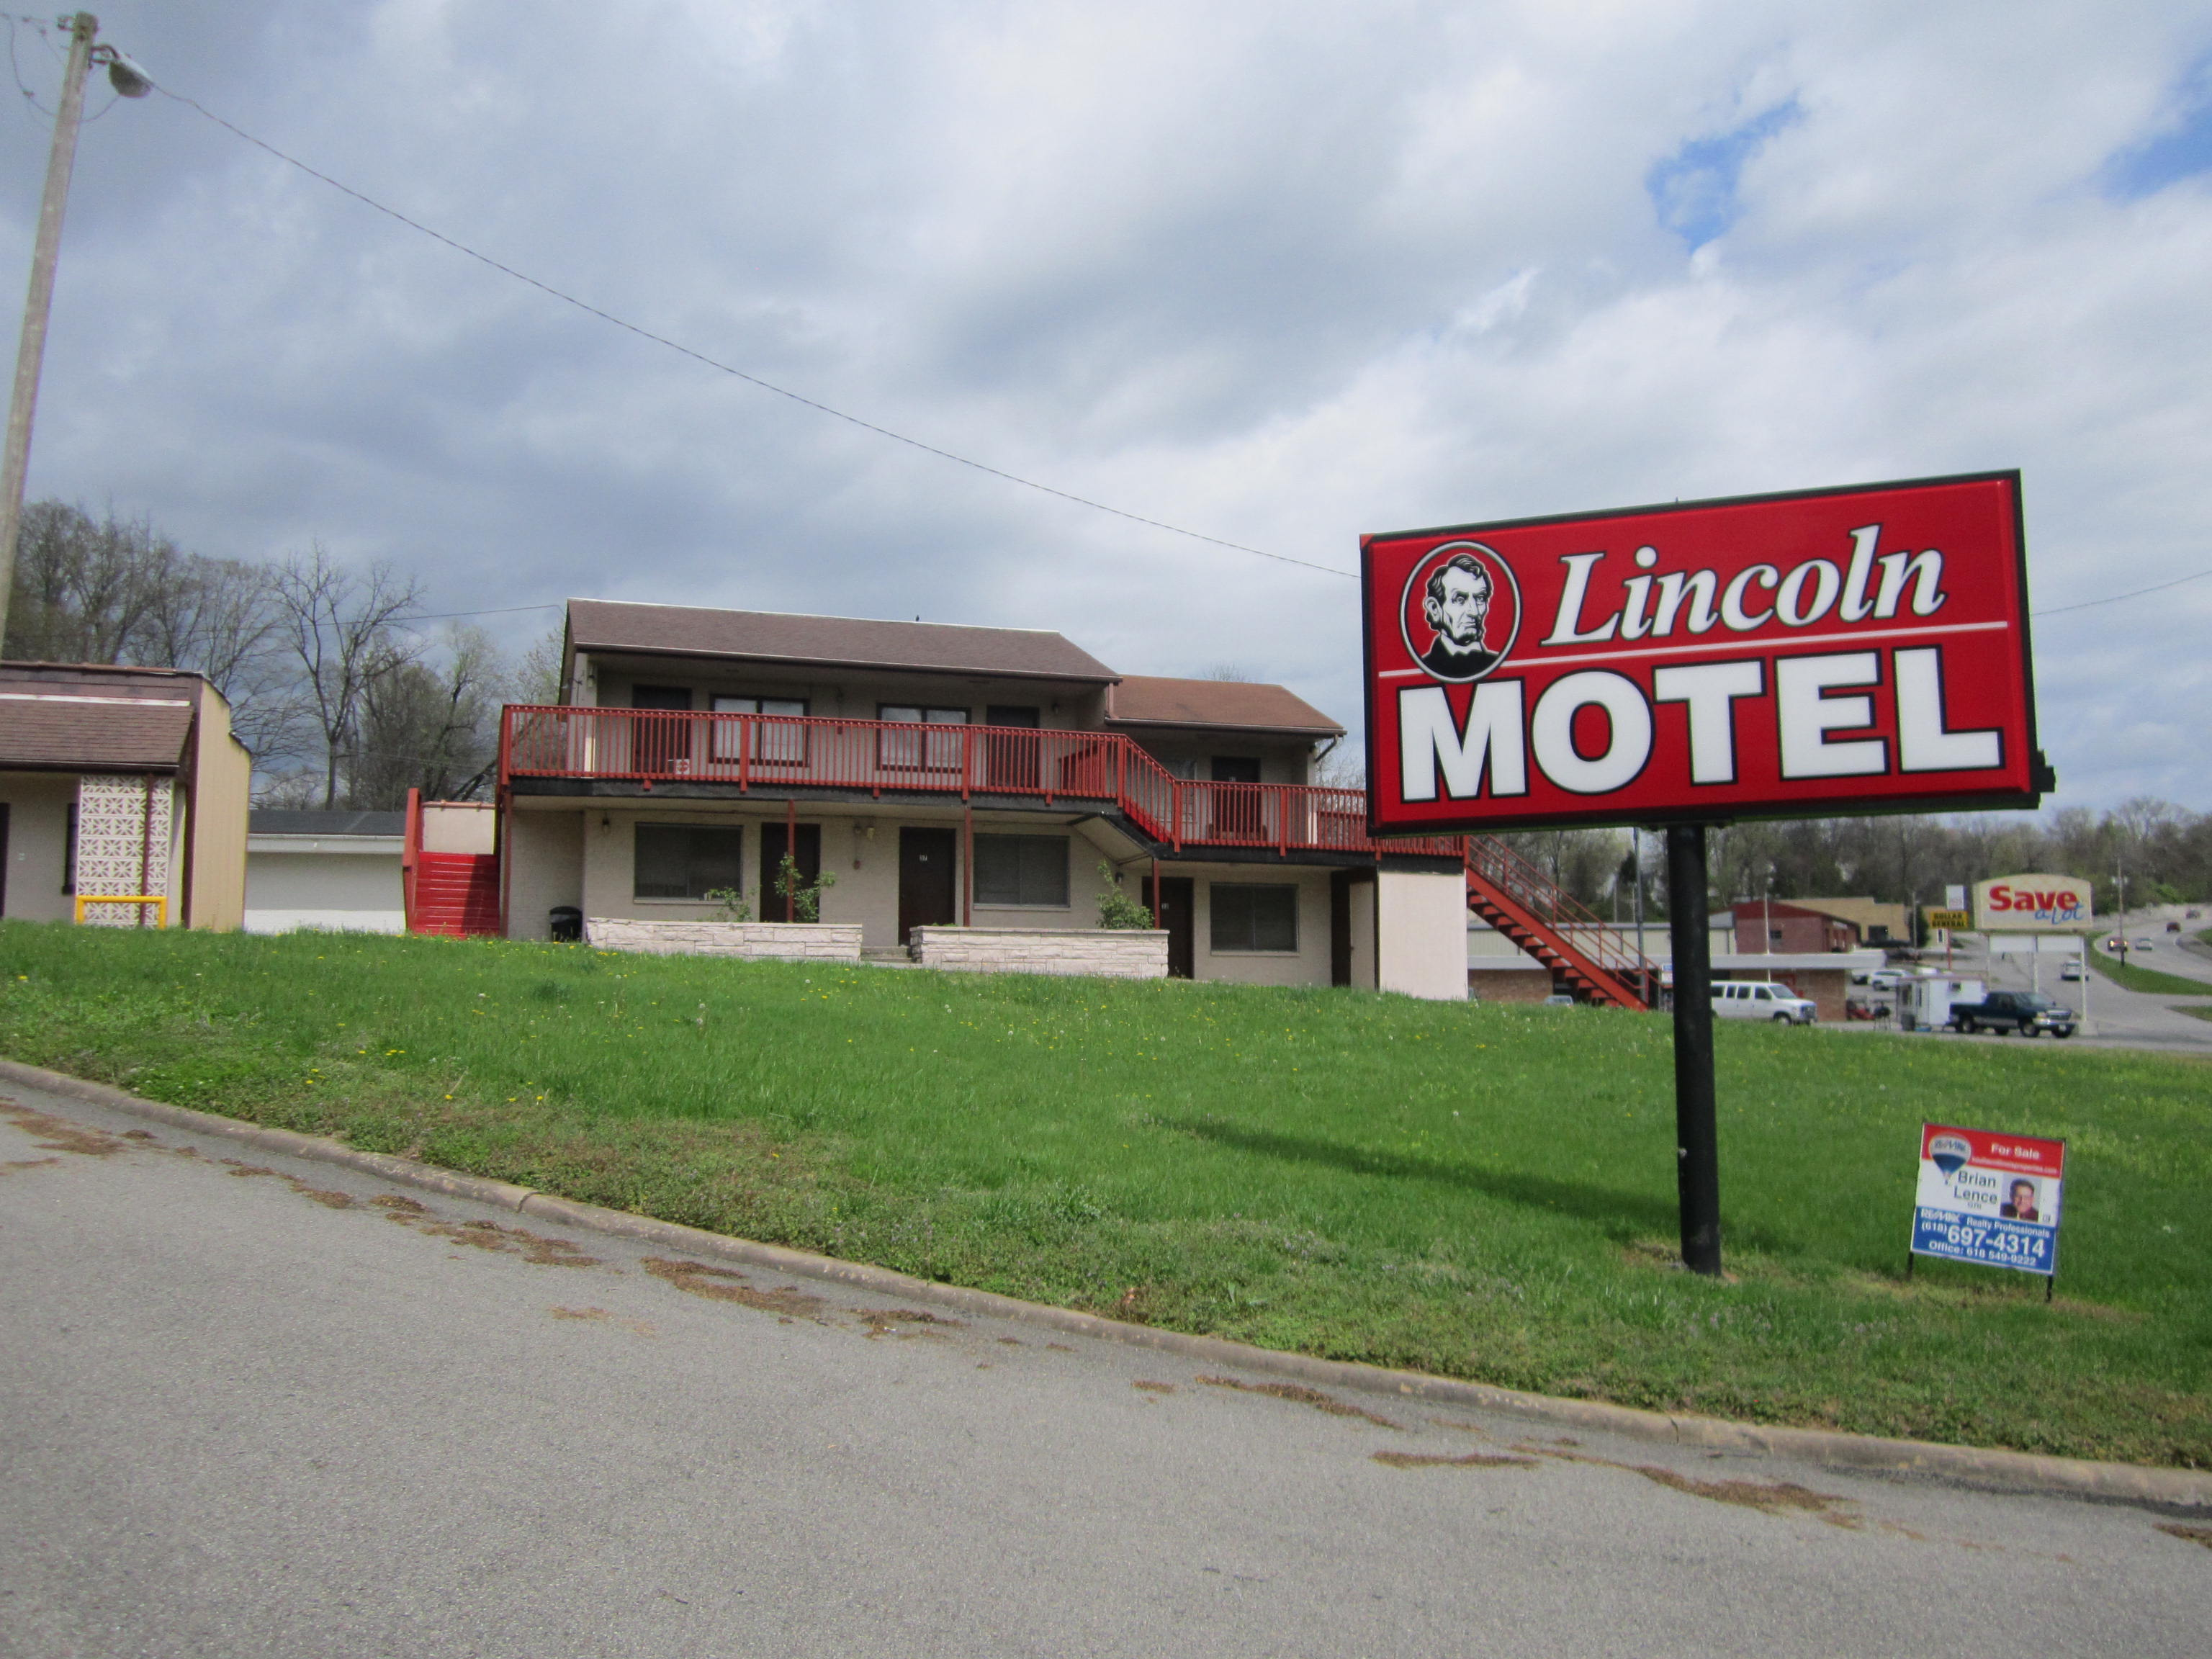 il lincoln s express tourist gds codes travel in hotels class lcnil weekly holiday inn reservation